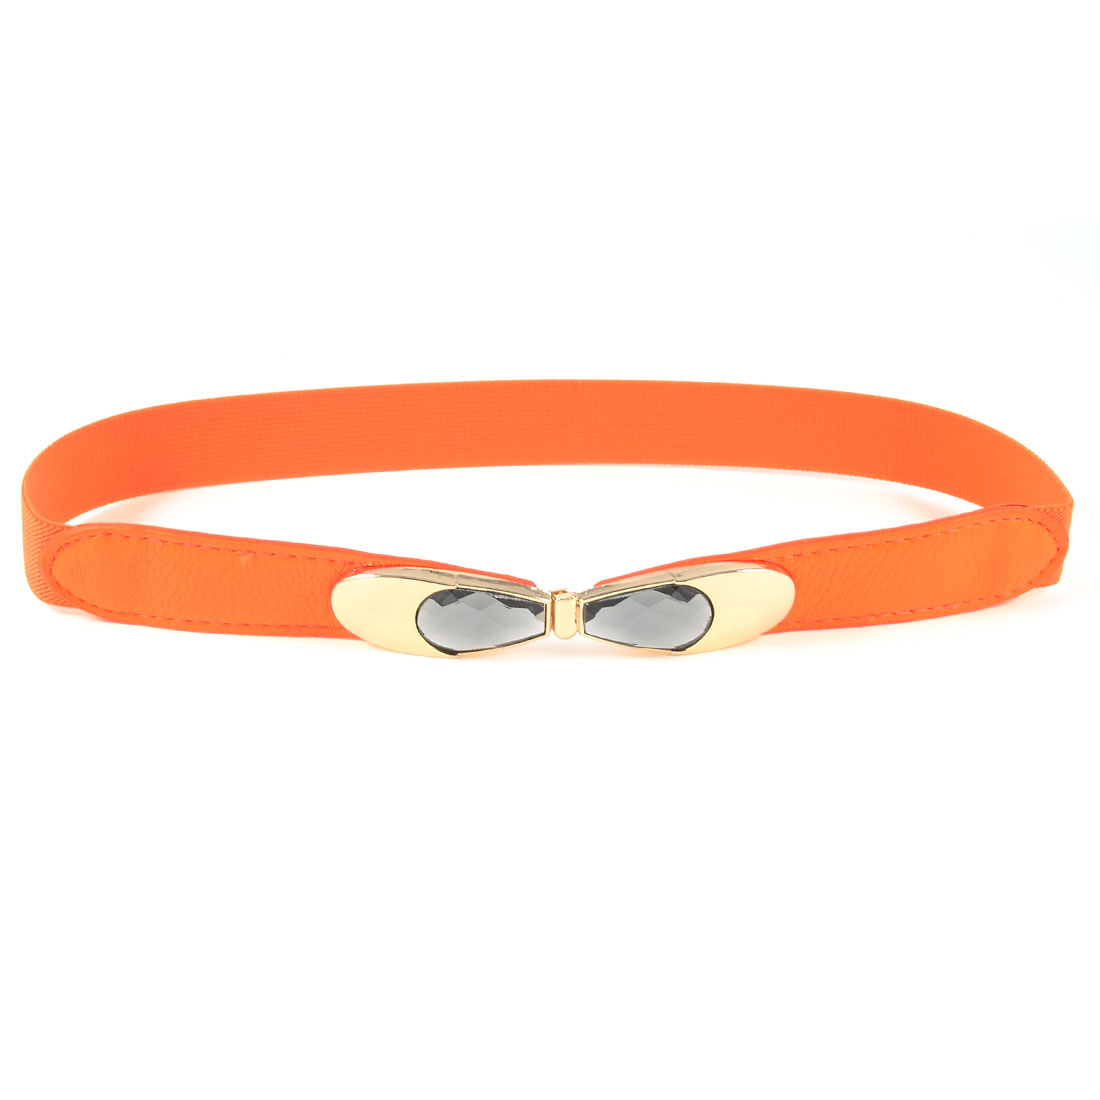 Gold Tone Bowtie Shape Interlock Buckle Elastic Band Waist Belt Orange for Lady